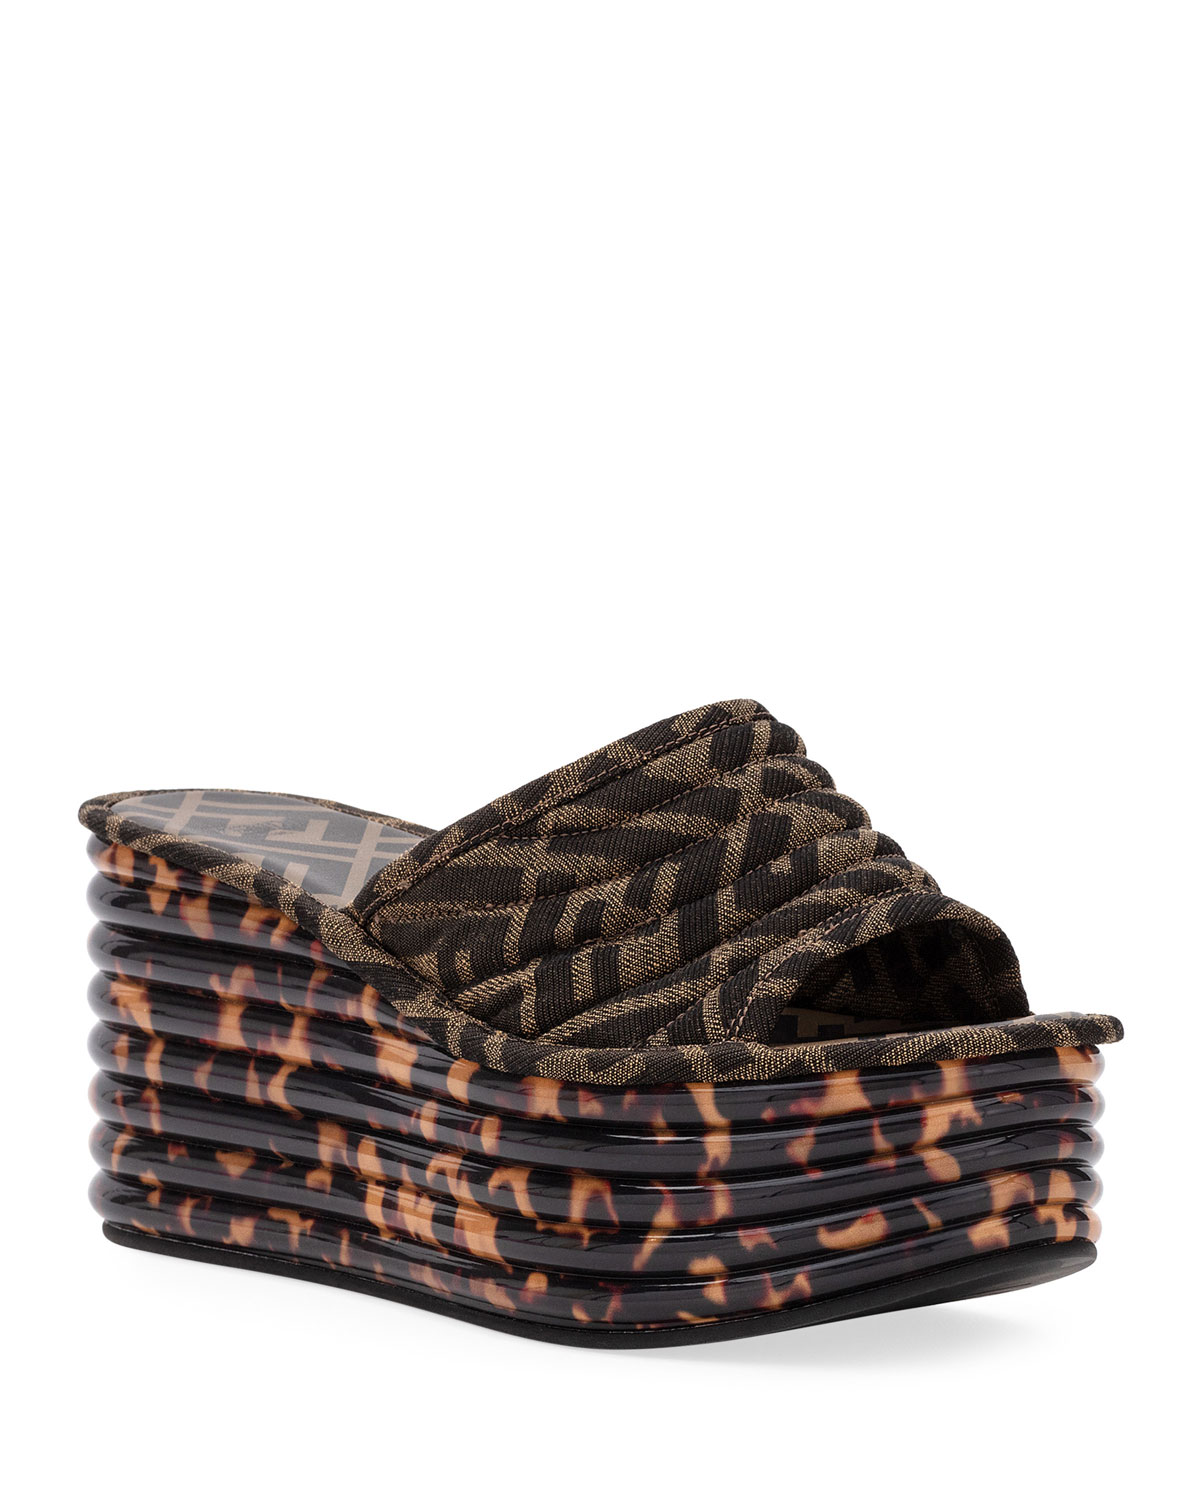 Fendi Sandals FF LOGO WEDGE SLIDE SANDALS